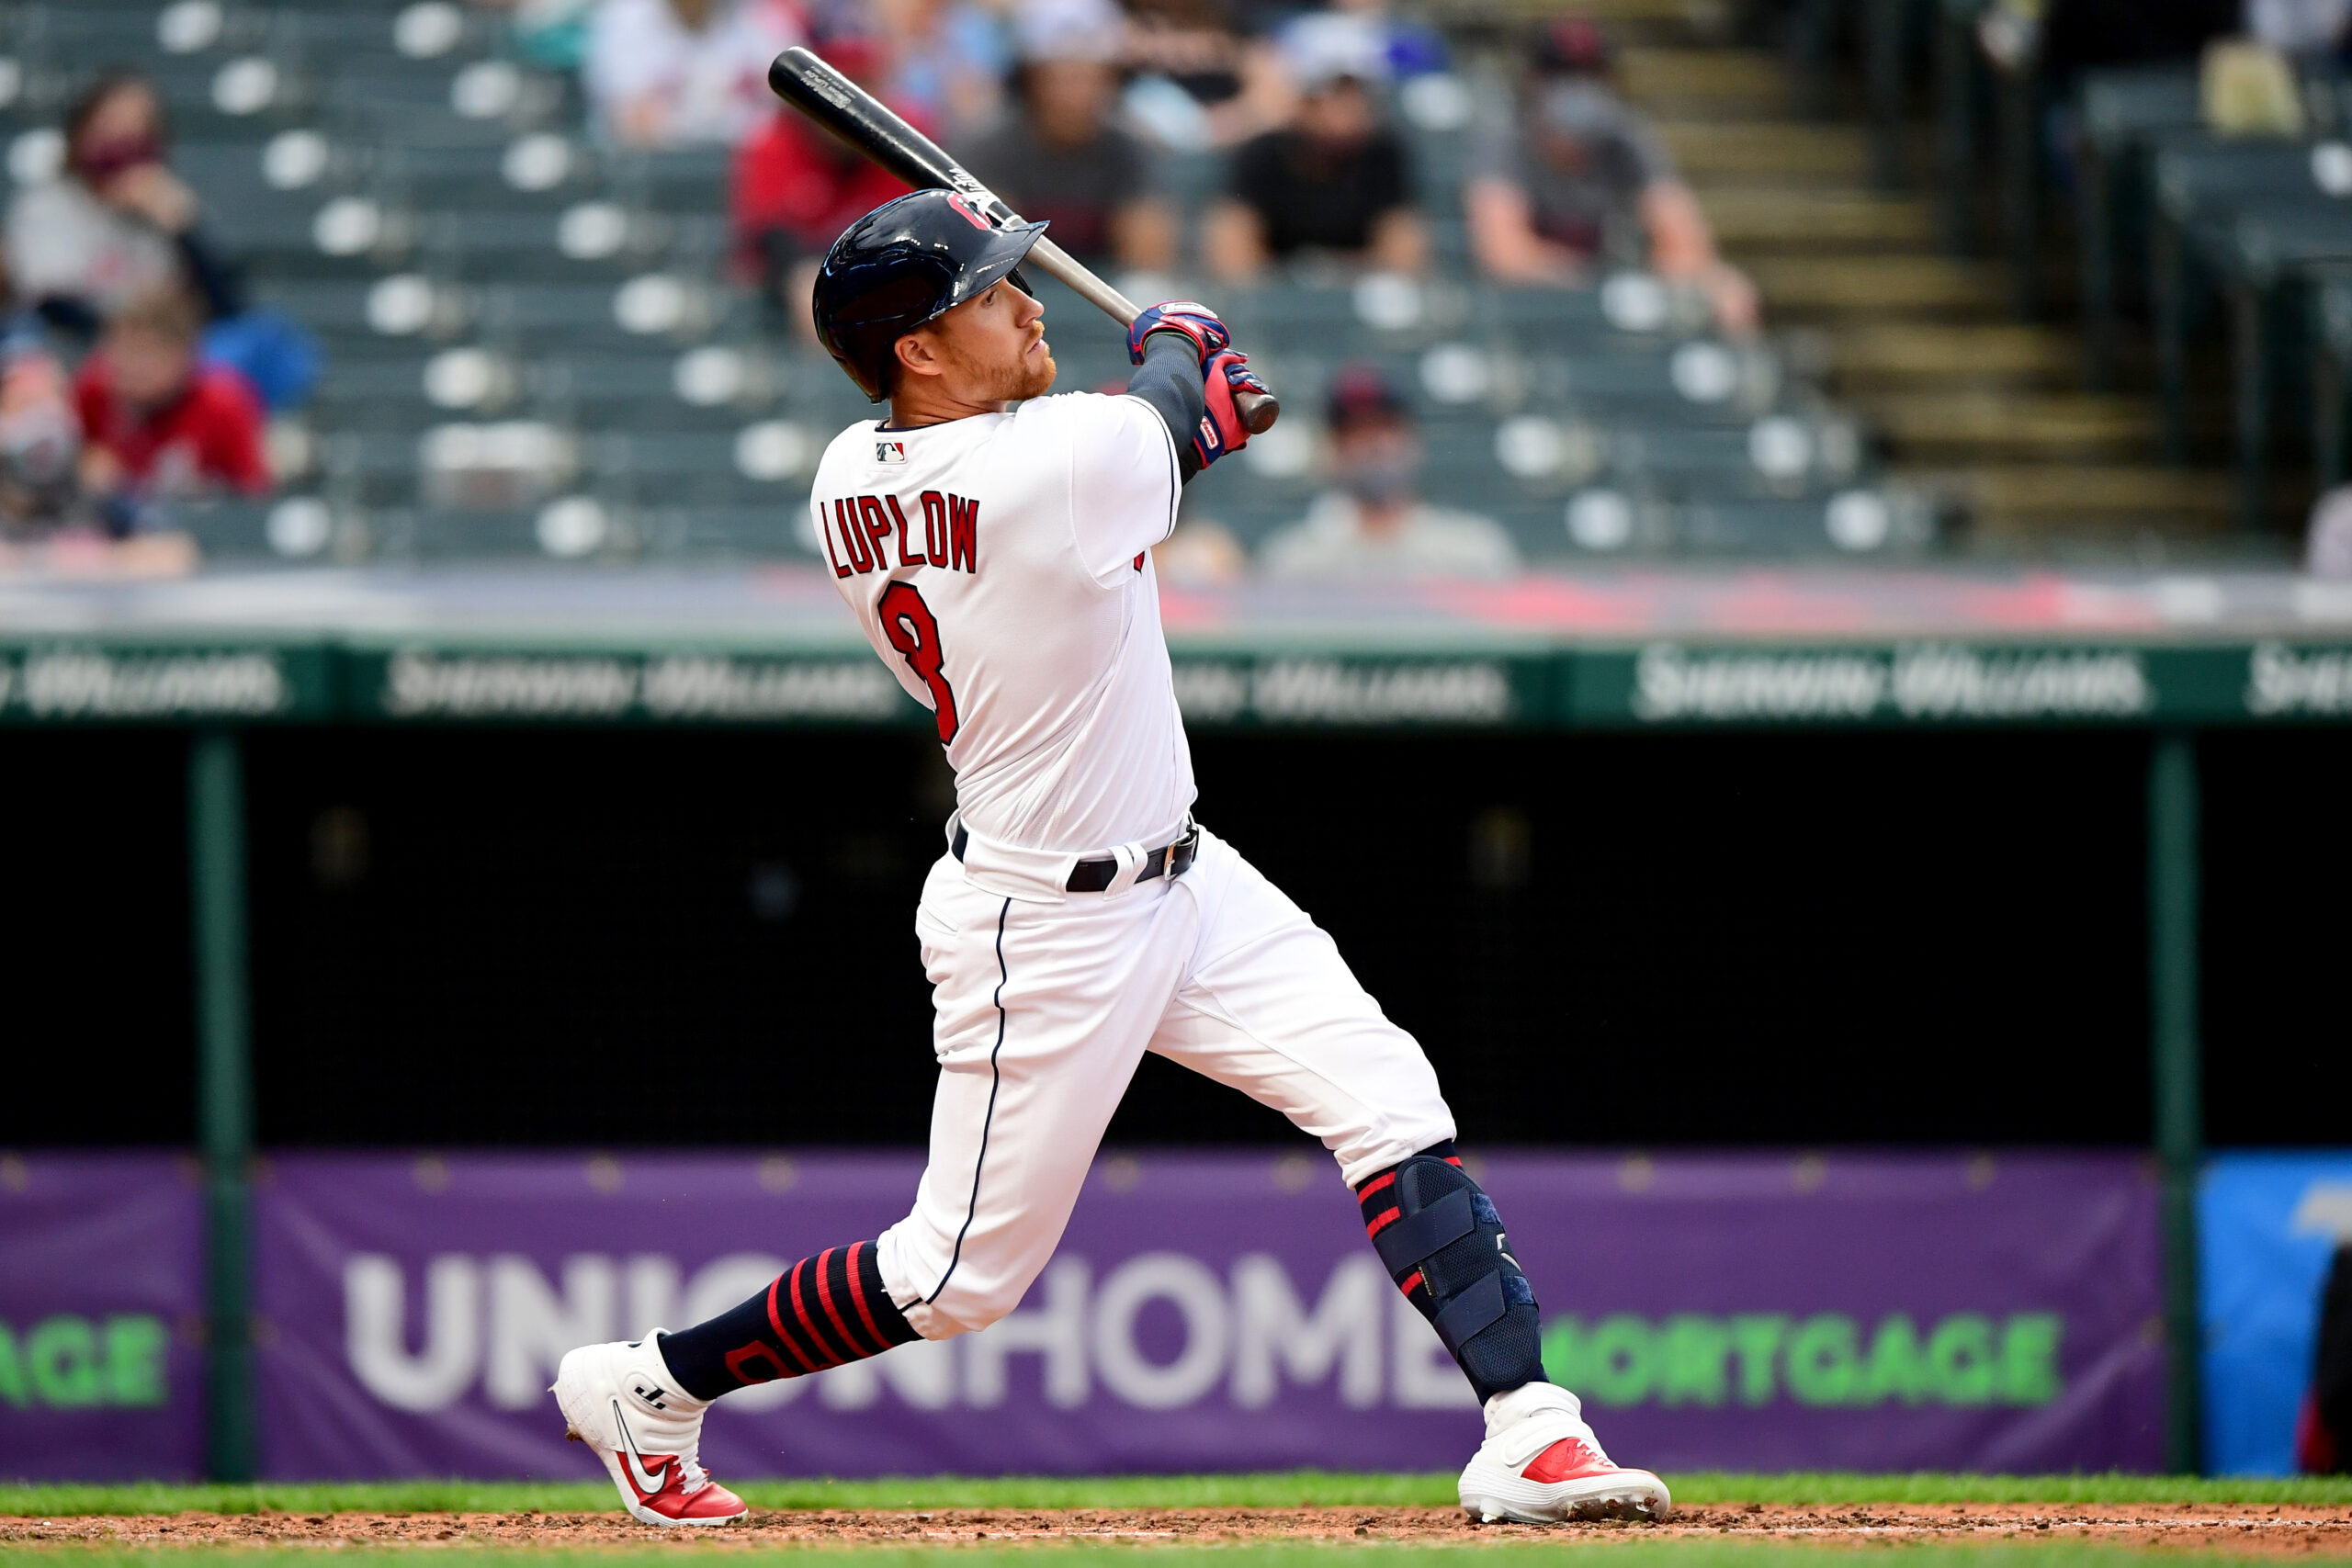 Jordan Luplow #8 of the Cleveland Indians hits a three-run home run in the fourth inning during a game against the Detroit Tigers at Progressive Field on April 10, 2021 in Cleveland, Ohio.